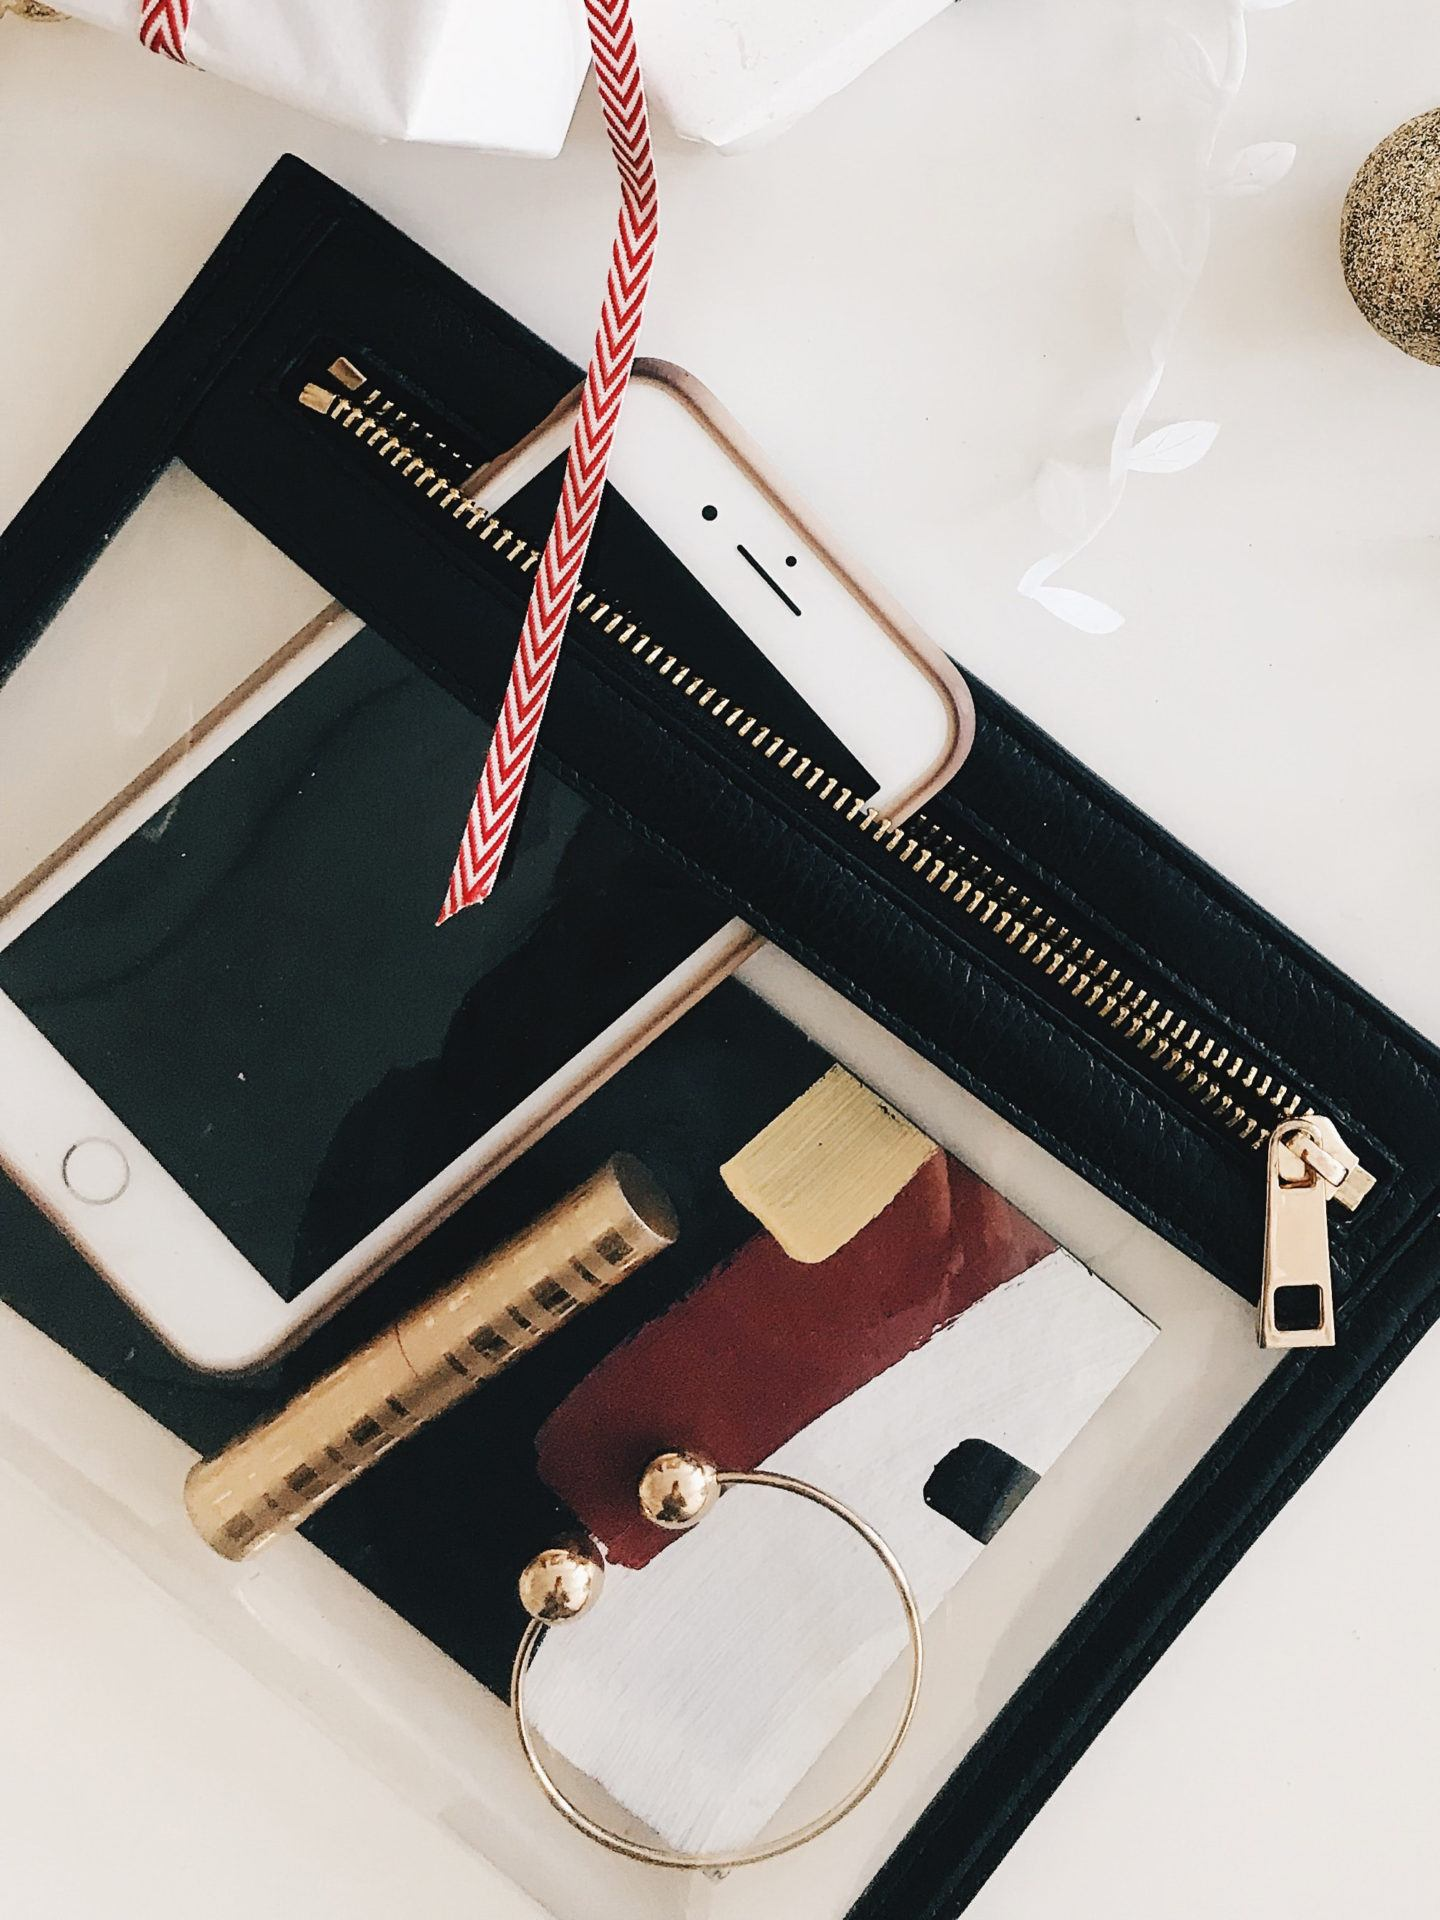 Digital detox challenge to declutter your digital life, by lifestyle blogger What The Fab